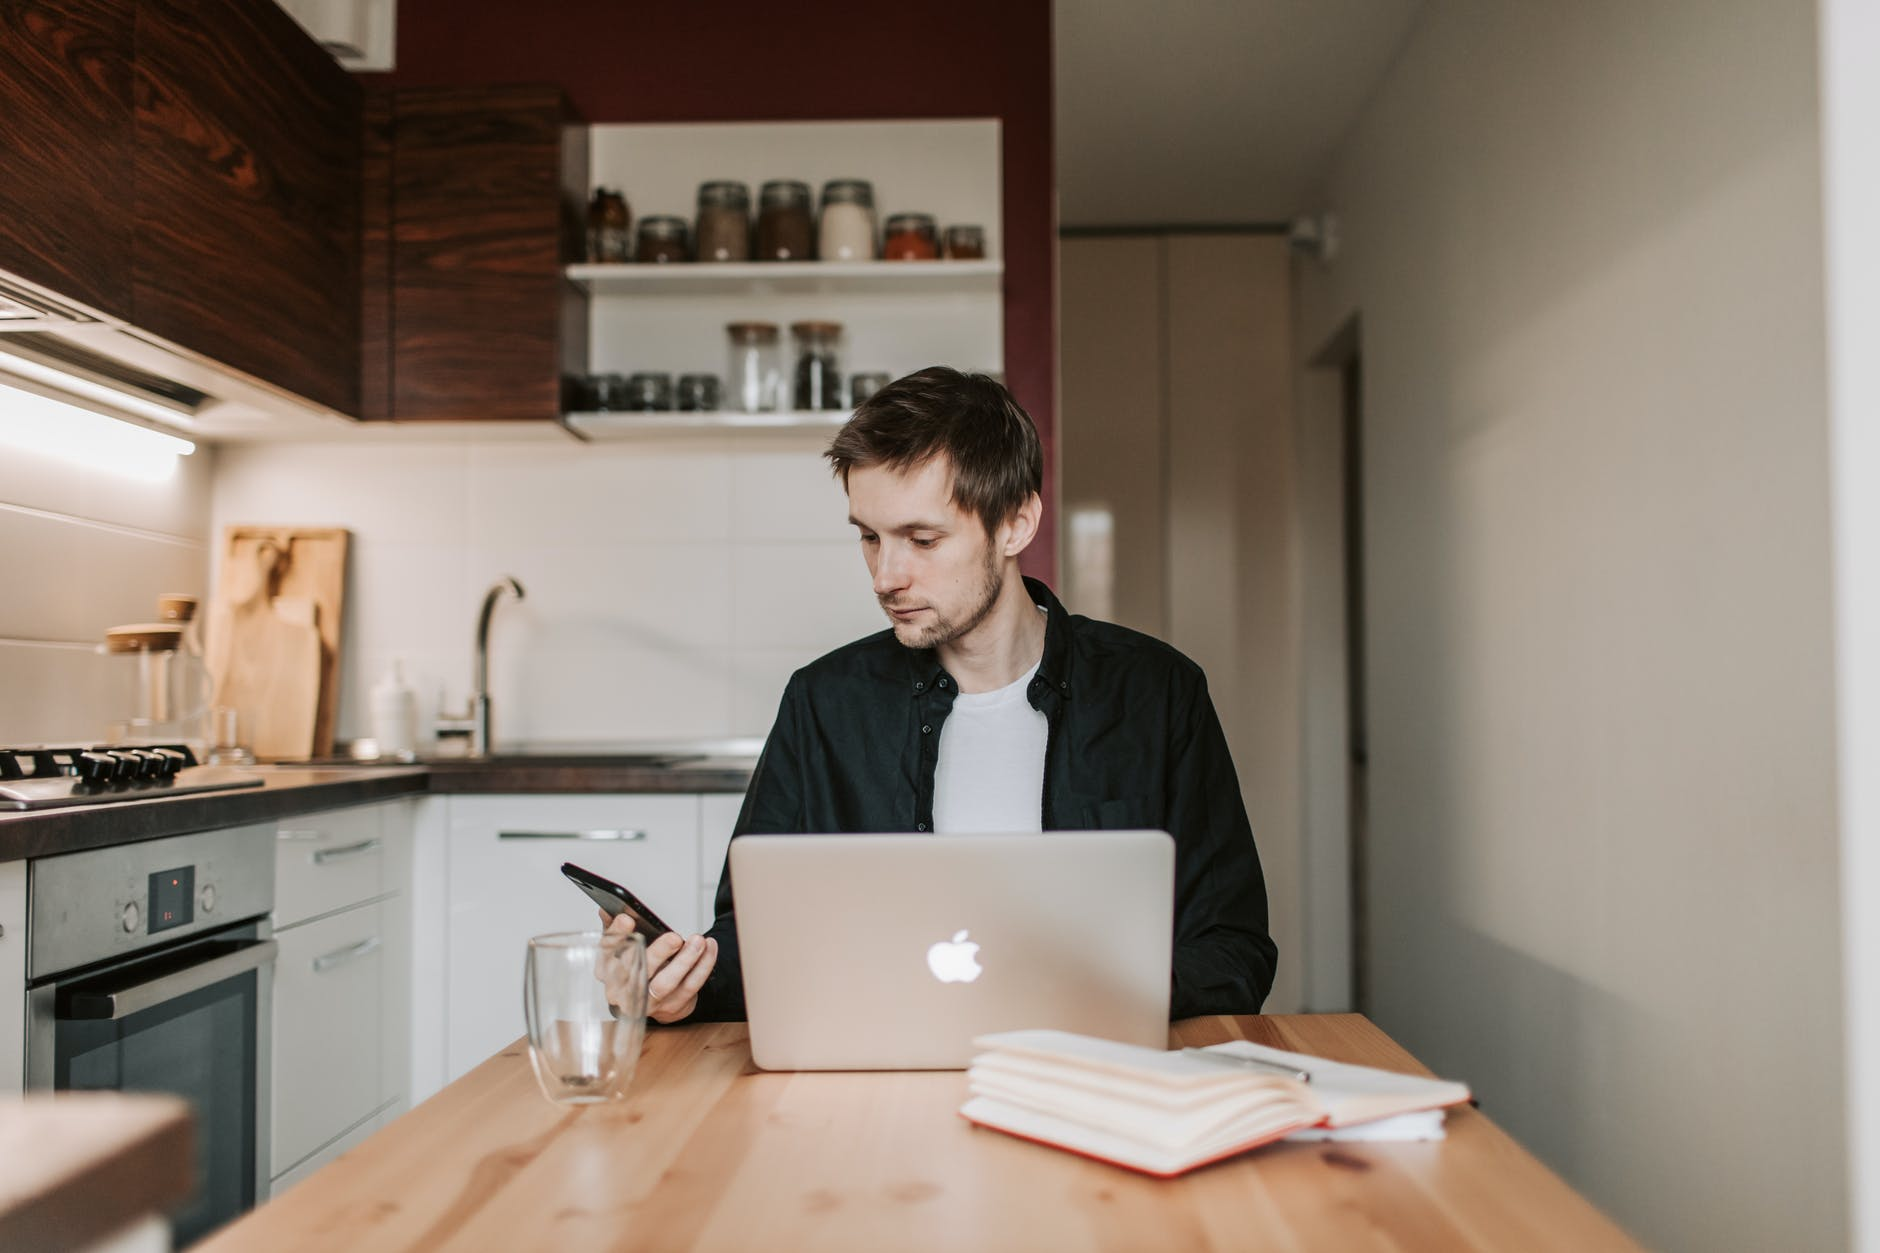 man working on a Macbook in his kitchen while looking expressionless at his phone